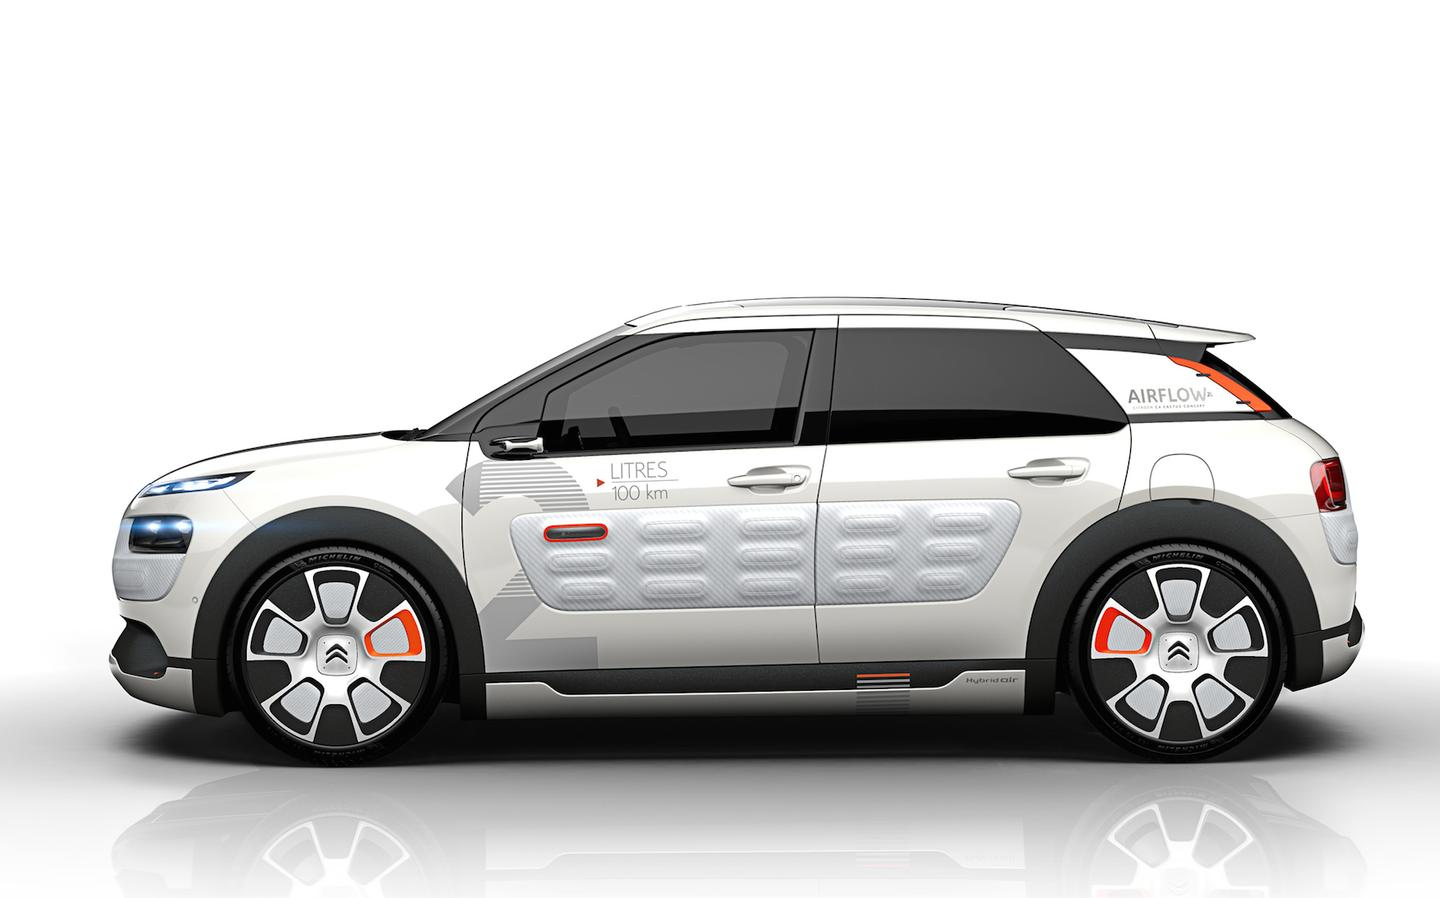 The C4 Cactus Airflow achieves 141 mpg